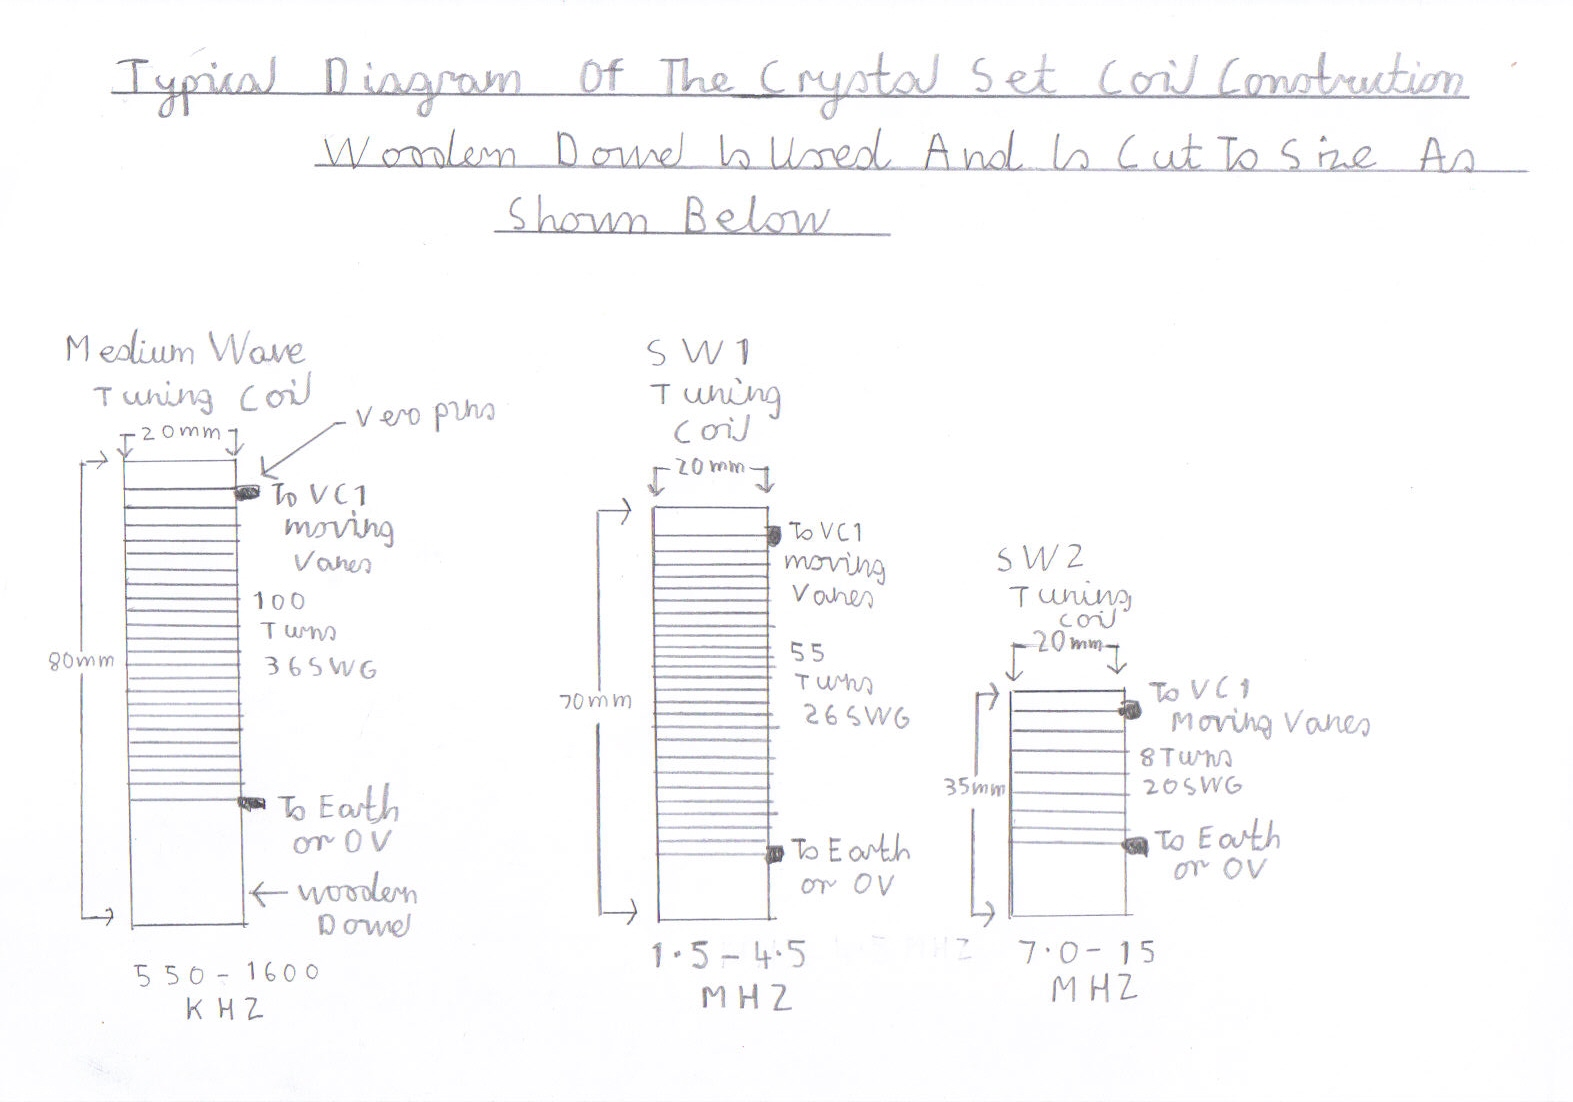 Progressive Crystal Set To Regenerative Receiver Using Safe 12v Ht Line Frequency Radio Am Electrical Engineering L1 Tuning Coil Details For All The Circuits Woodern Dowl Is Used Make Construction Very Simple